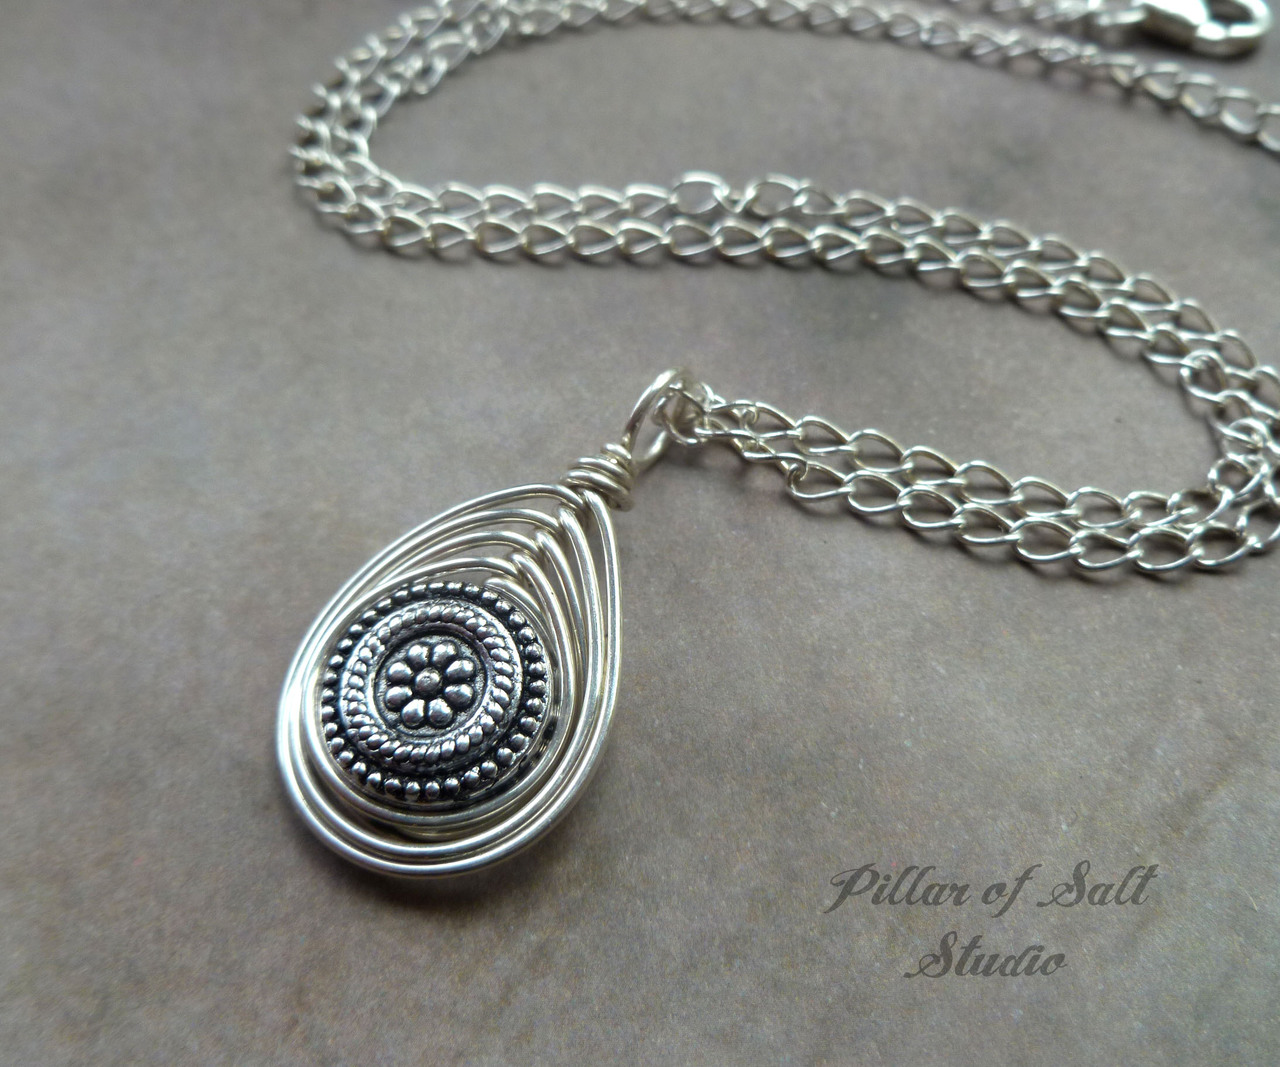 Wire wrapped necklace as seen on Chicago PD TV / Pillar of Salt Studio